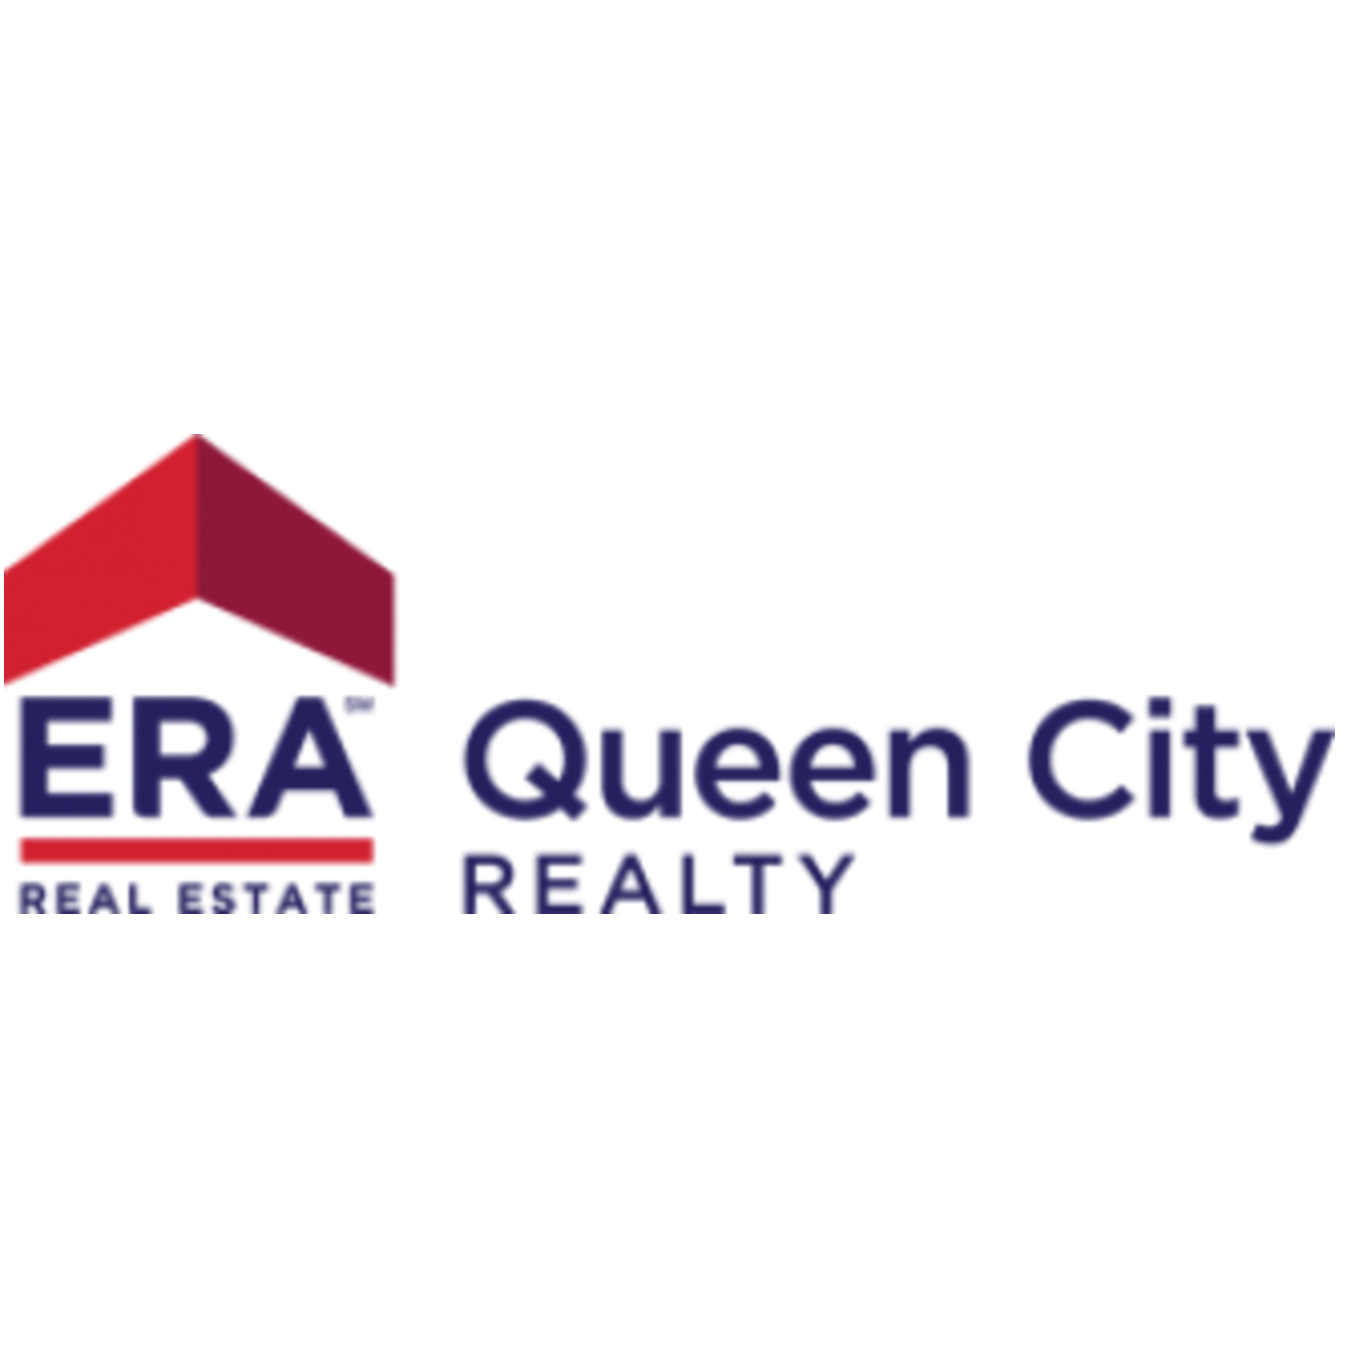 Sandra Jackson | Era Queen City Realty